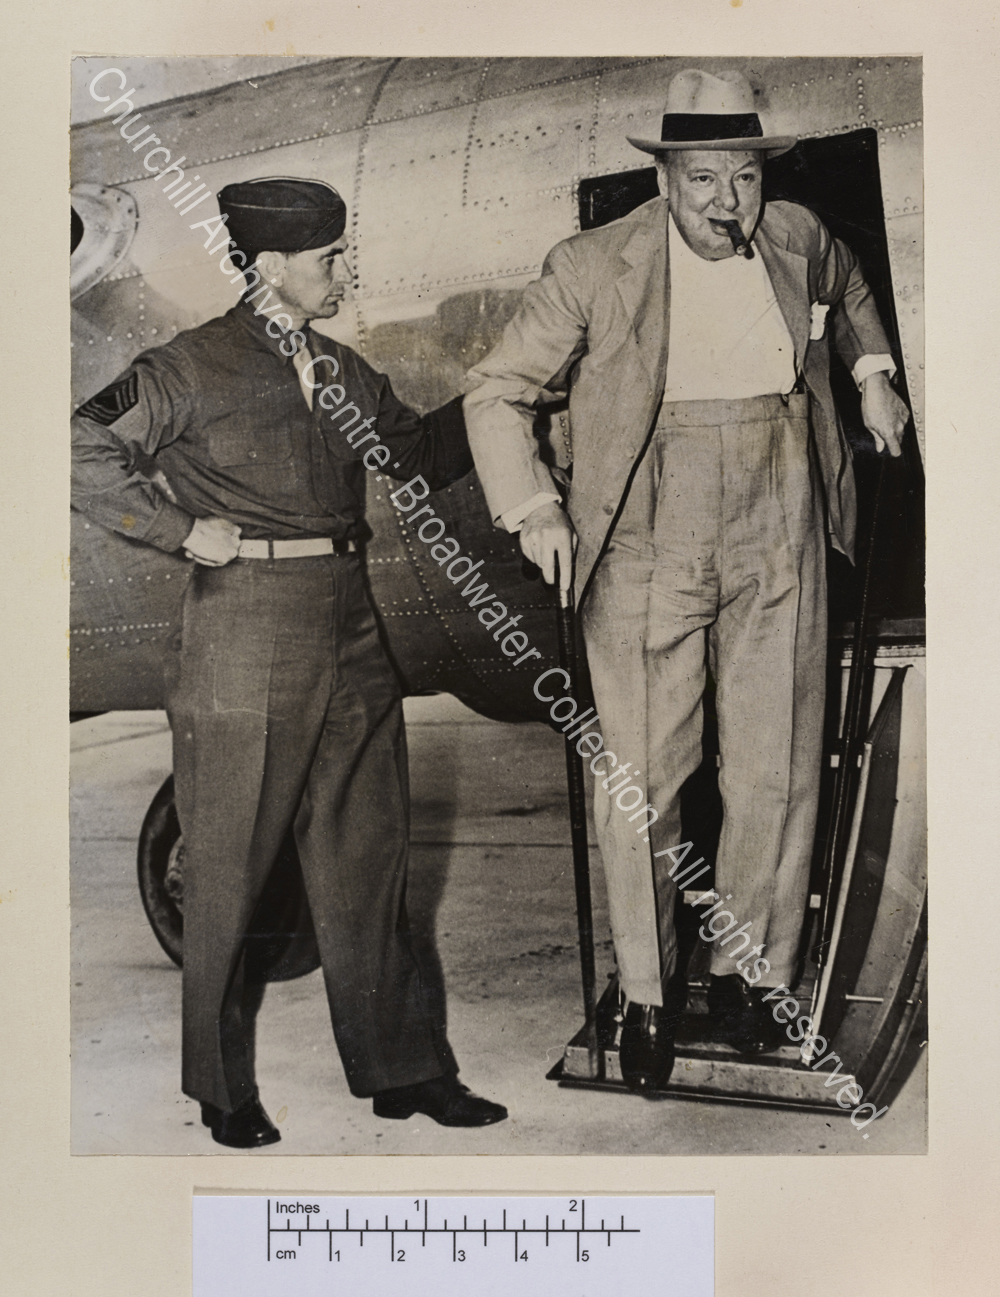 Photo shows WSC walking down the steps of a small aircraft. He is wearing a light suit and hat and has a cigar in his mouth.